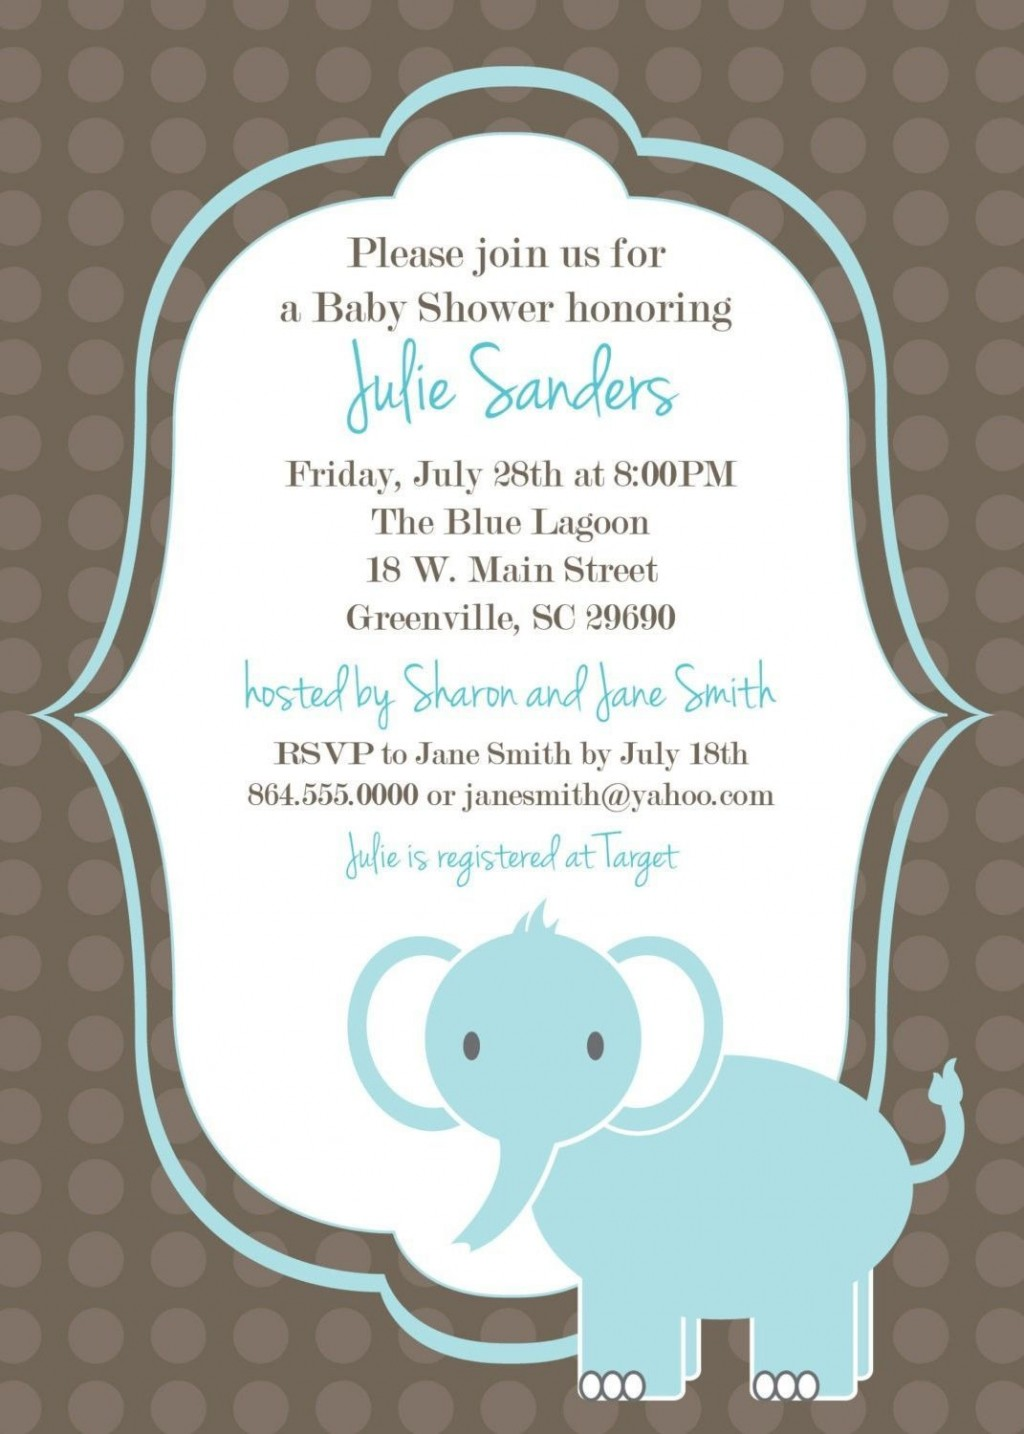 000 Dreaded Baby Shower Invite Template Word Design  Work Invitation Wording Sample Format In M Free MicrosoftLarge